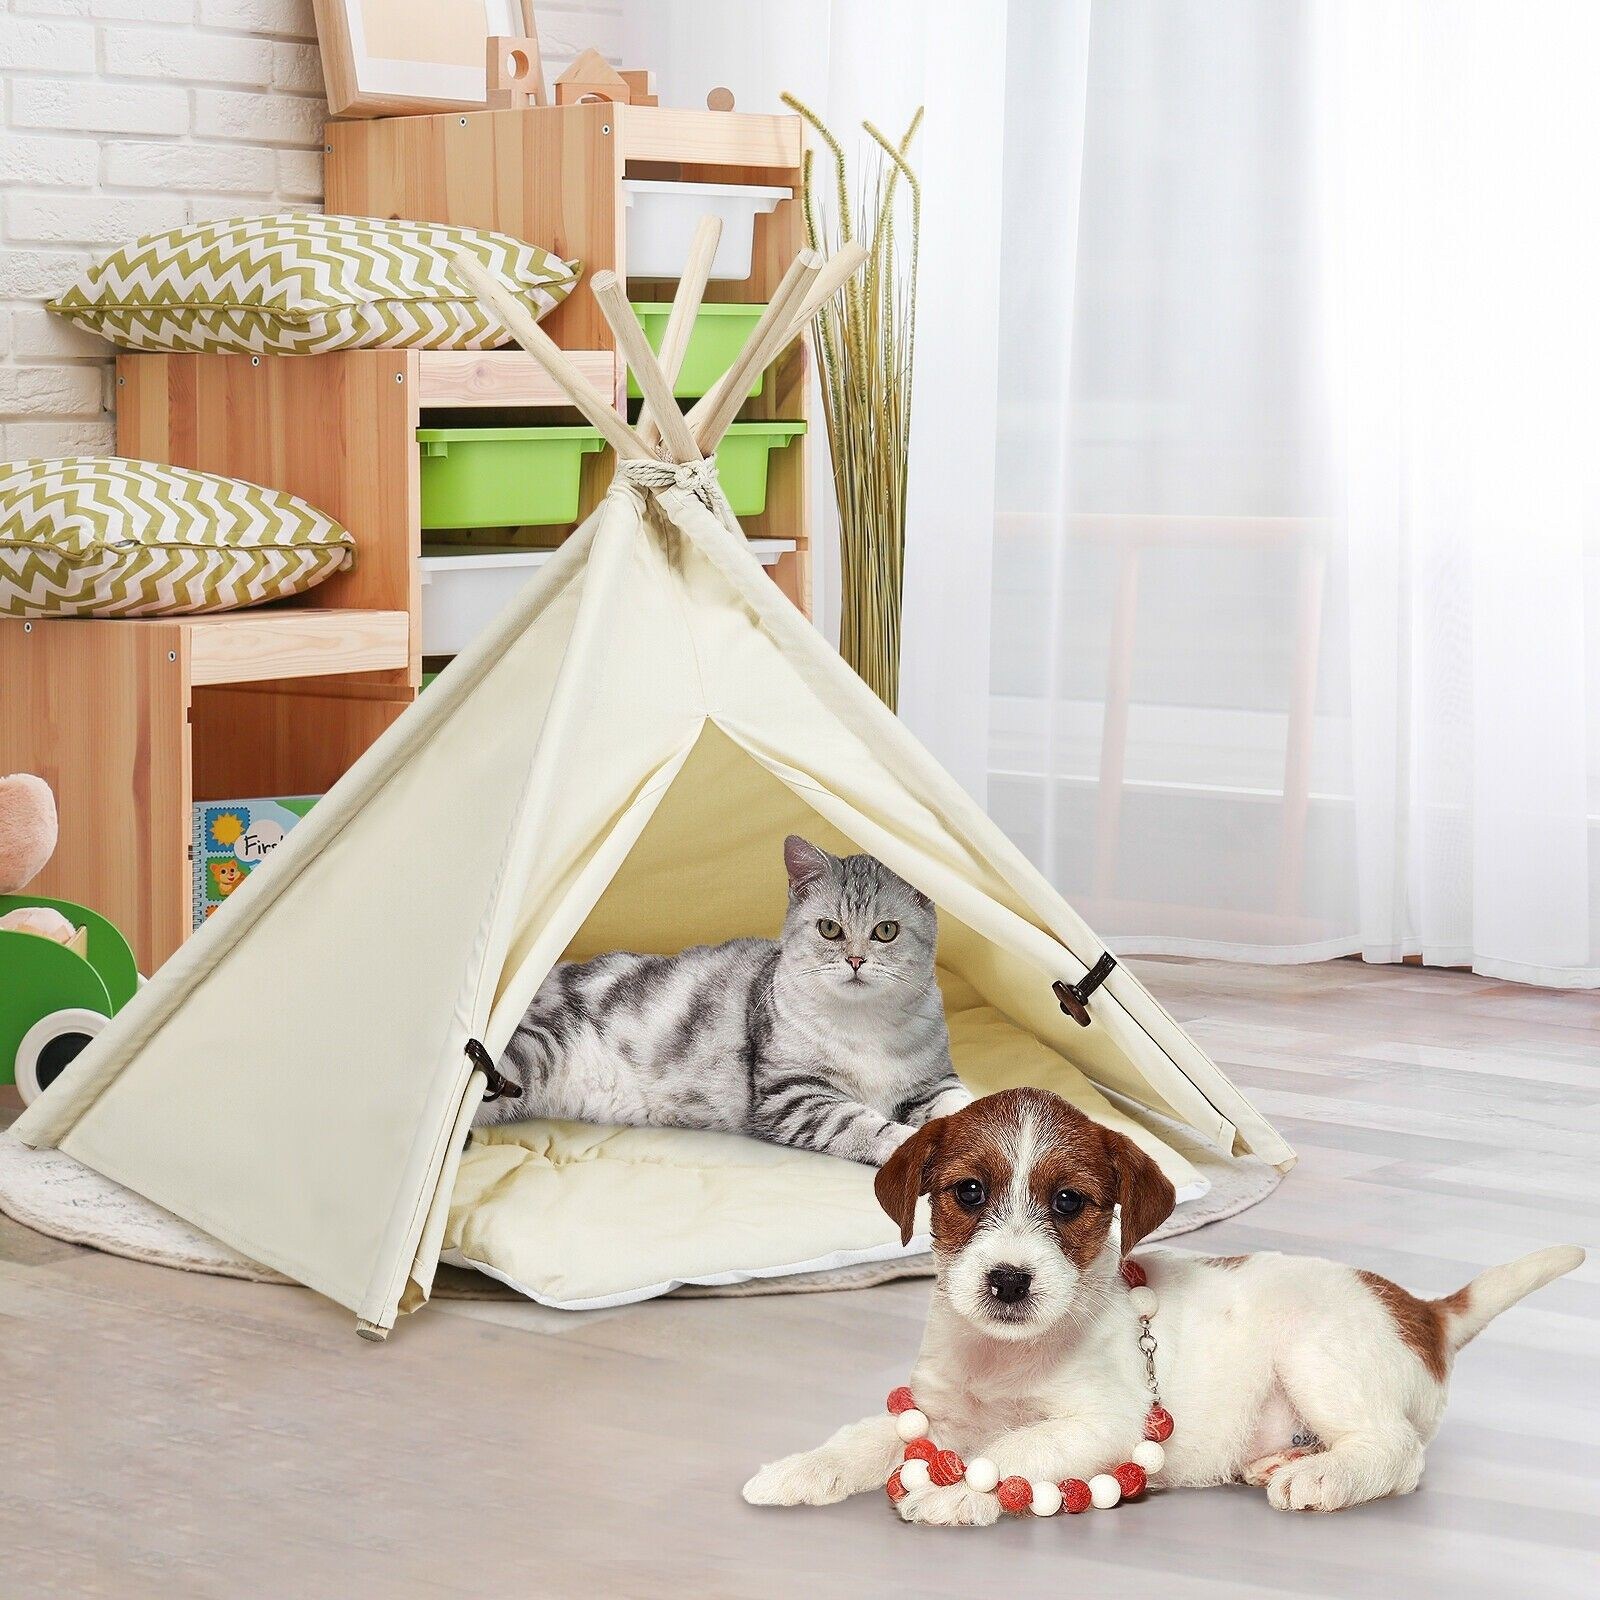 Indoor Pet Teepee Dog Puppy Cat Bed Portable Canvas Tent And House With Cushion Pet Teepee Indoor Pets Cat Bed